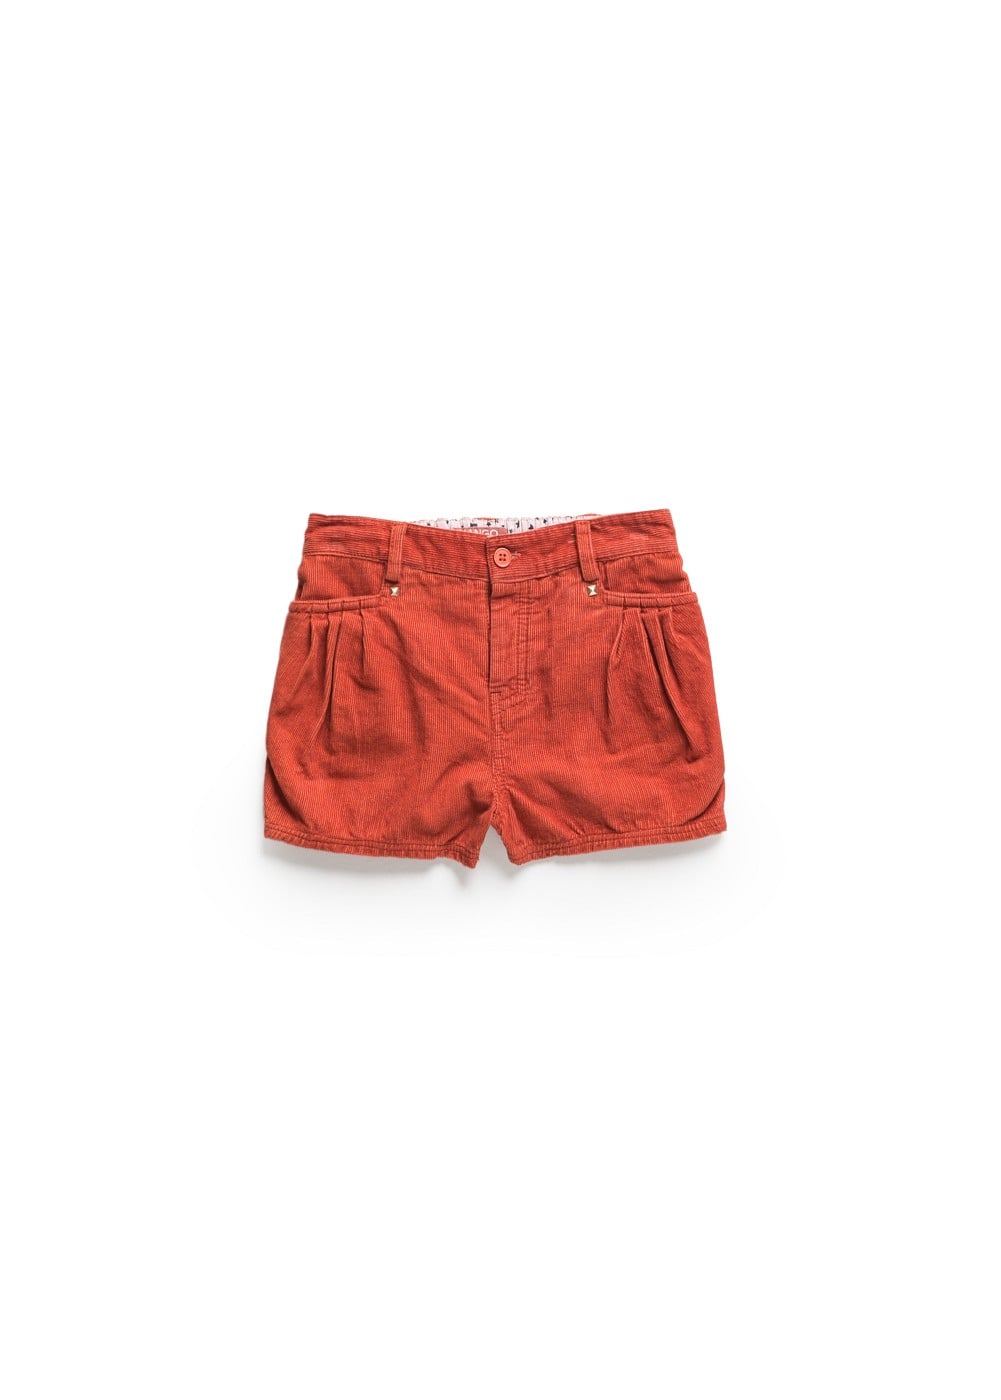 Studded corduroy shorts